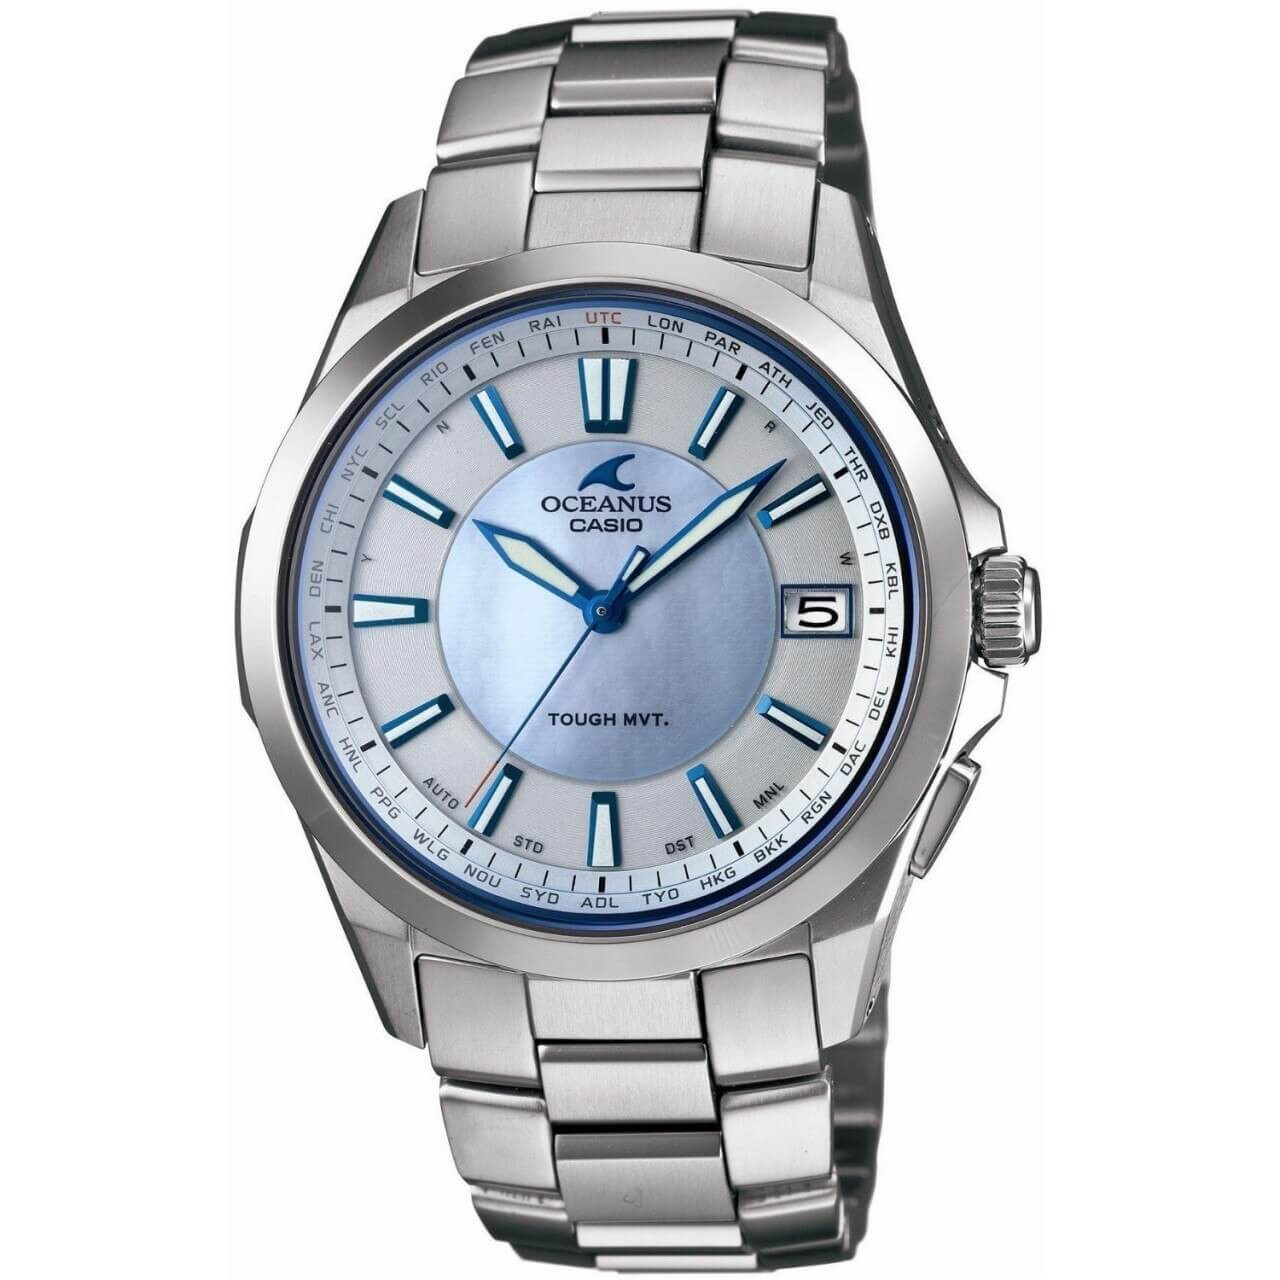 Casio Oceanus OCW-S100P-2AJF Smart Access